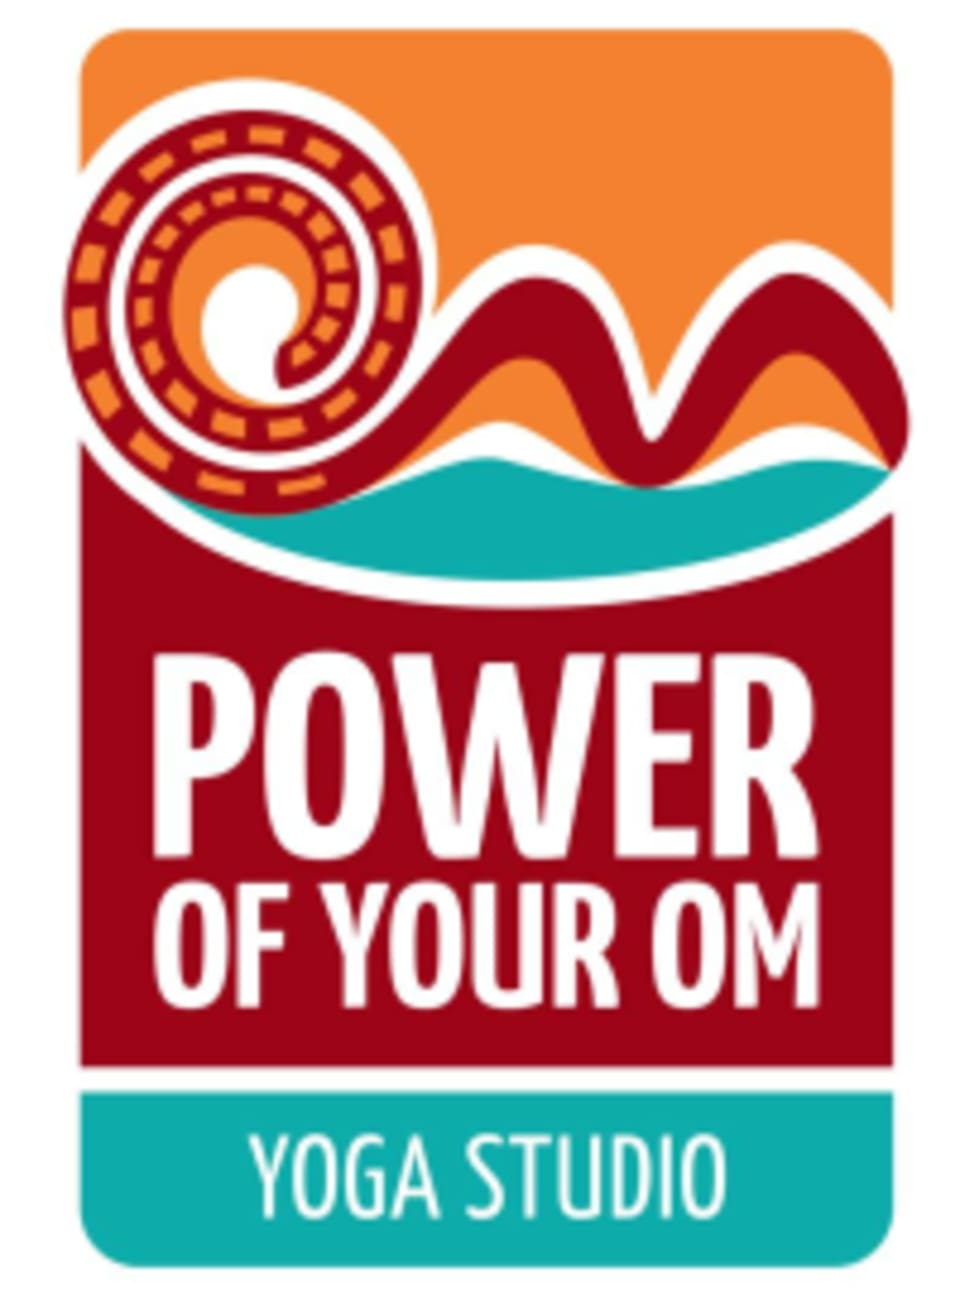 Image result for power of your om logo